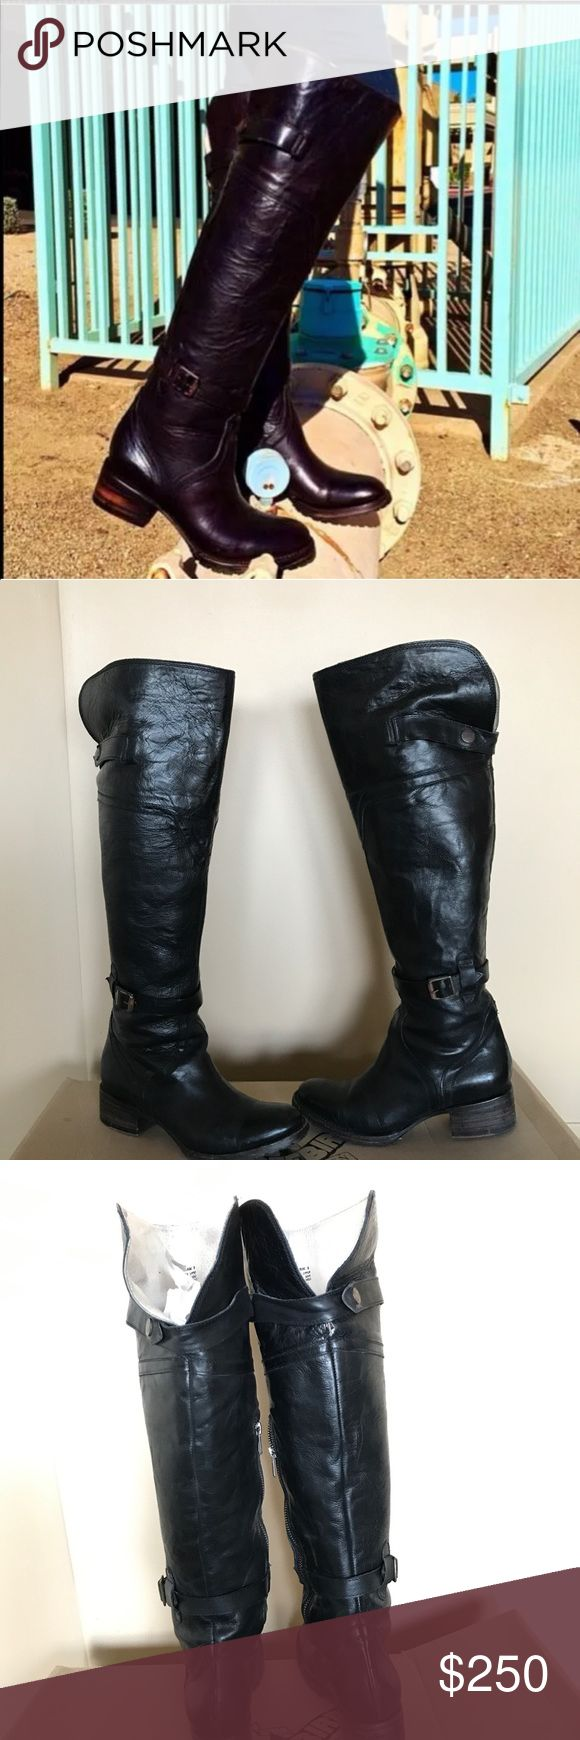 Freebird Quebec black boots  sz 8 Wore them twice, perfect conditions. Knee-high, wrinkled leather, rusted hardware accents the straps. Exposed side zip. Stacked heel and lug sole. Freebird by Steven Shoes Over the Knee Boots